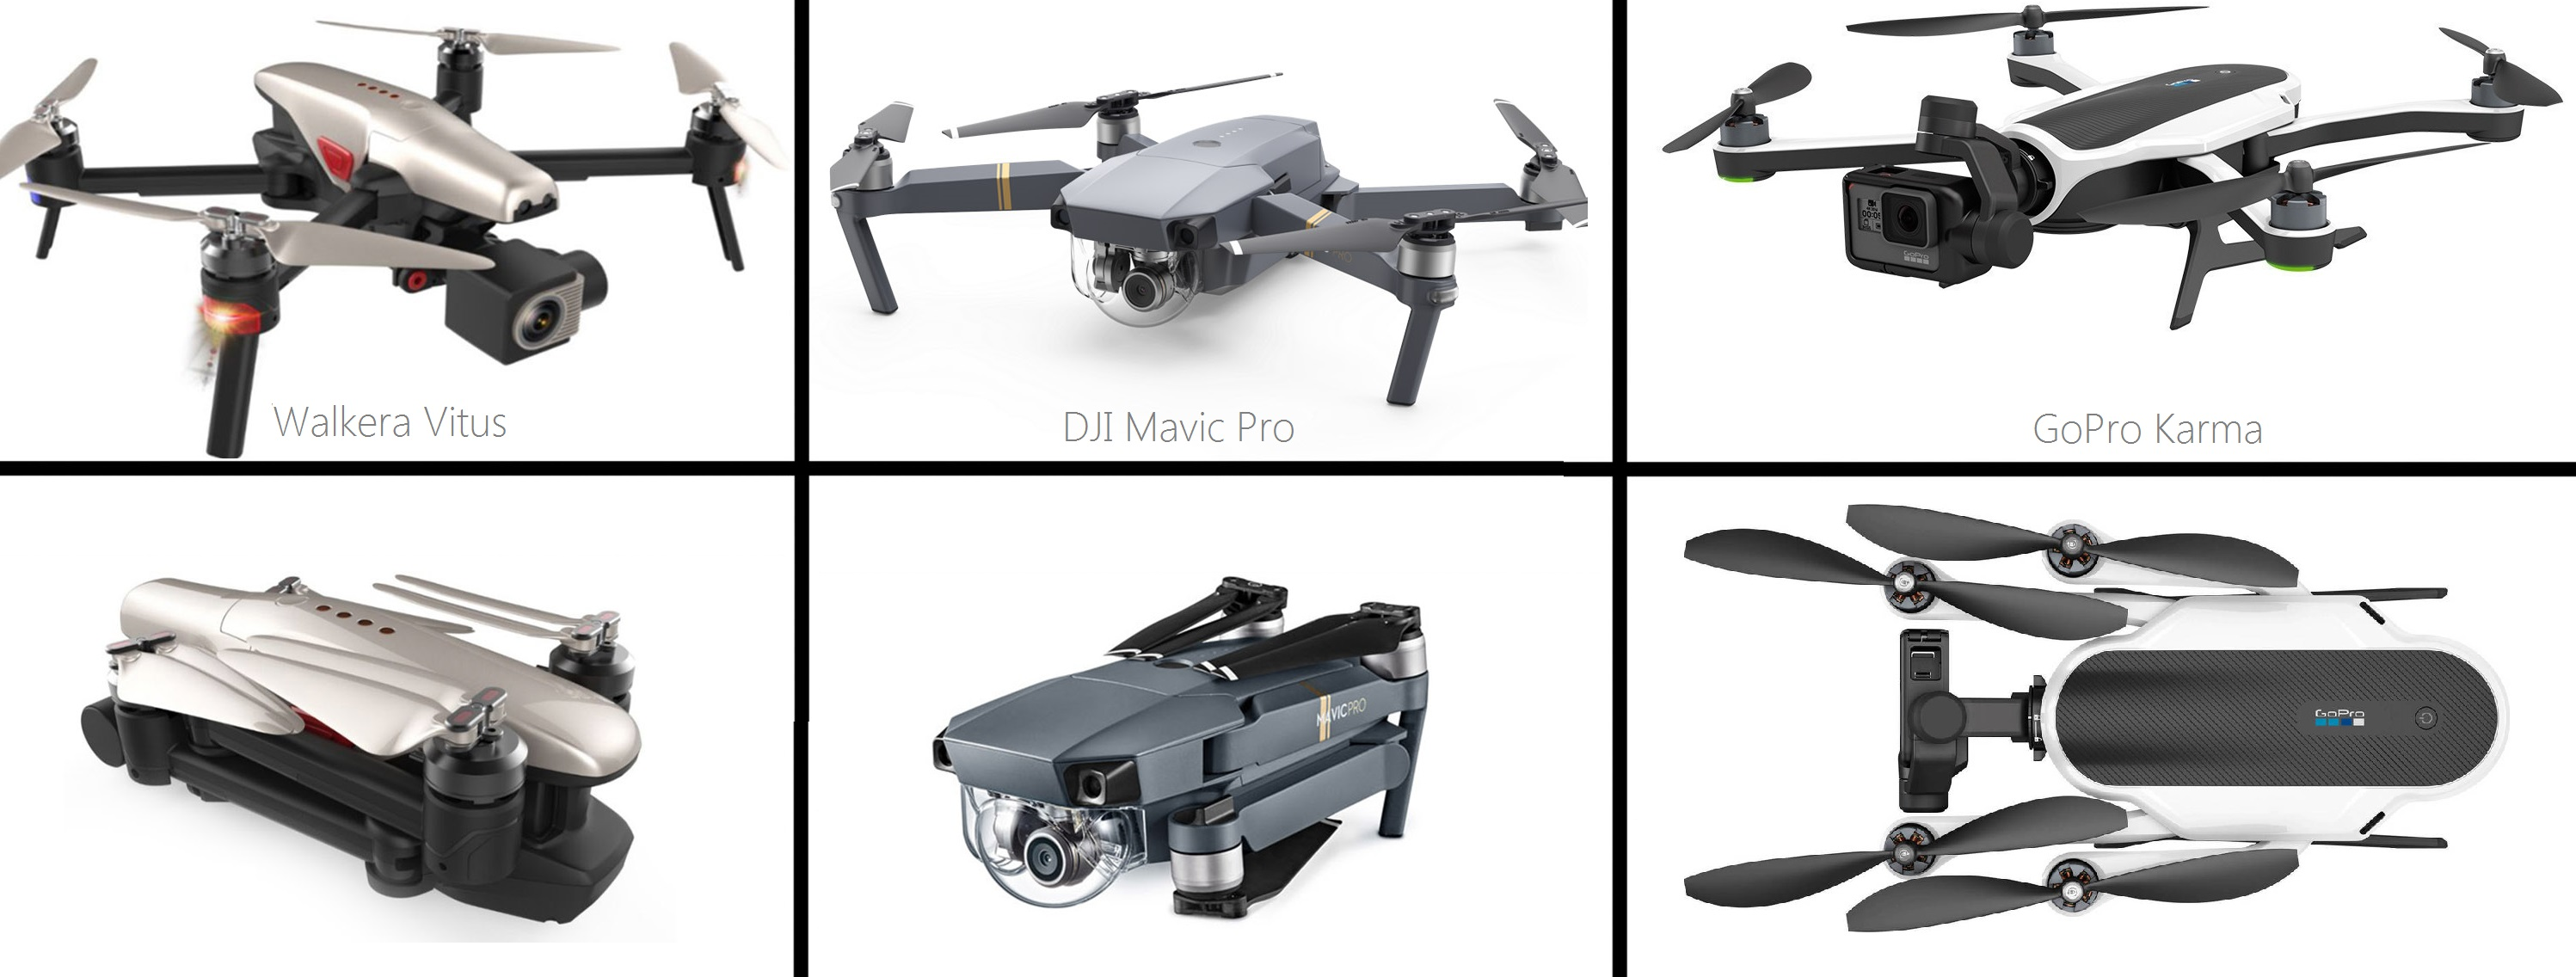 Walkera Witus vs DJI Mavic Pro vs GoPro Karma